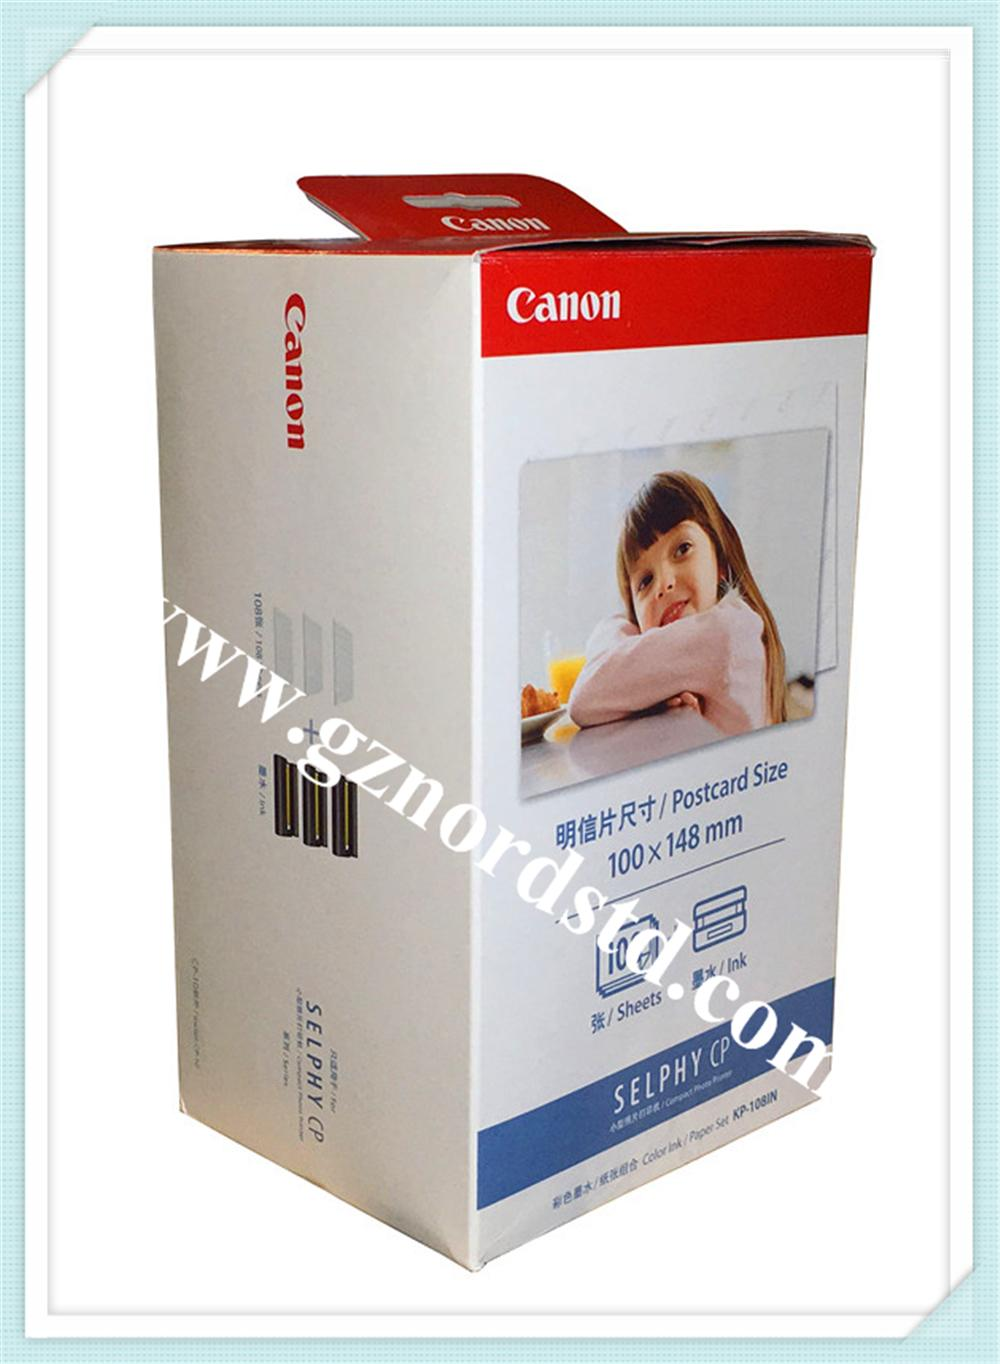 Canon Selphy Color Ink Paper Set Kp-108IN 108 4x6 Sheets with 3 inks 1